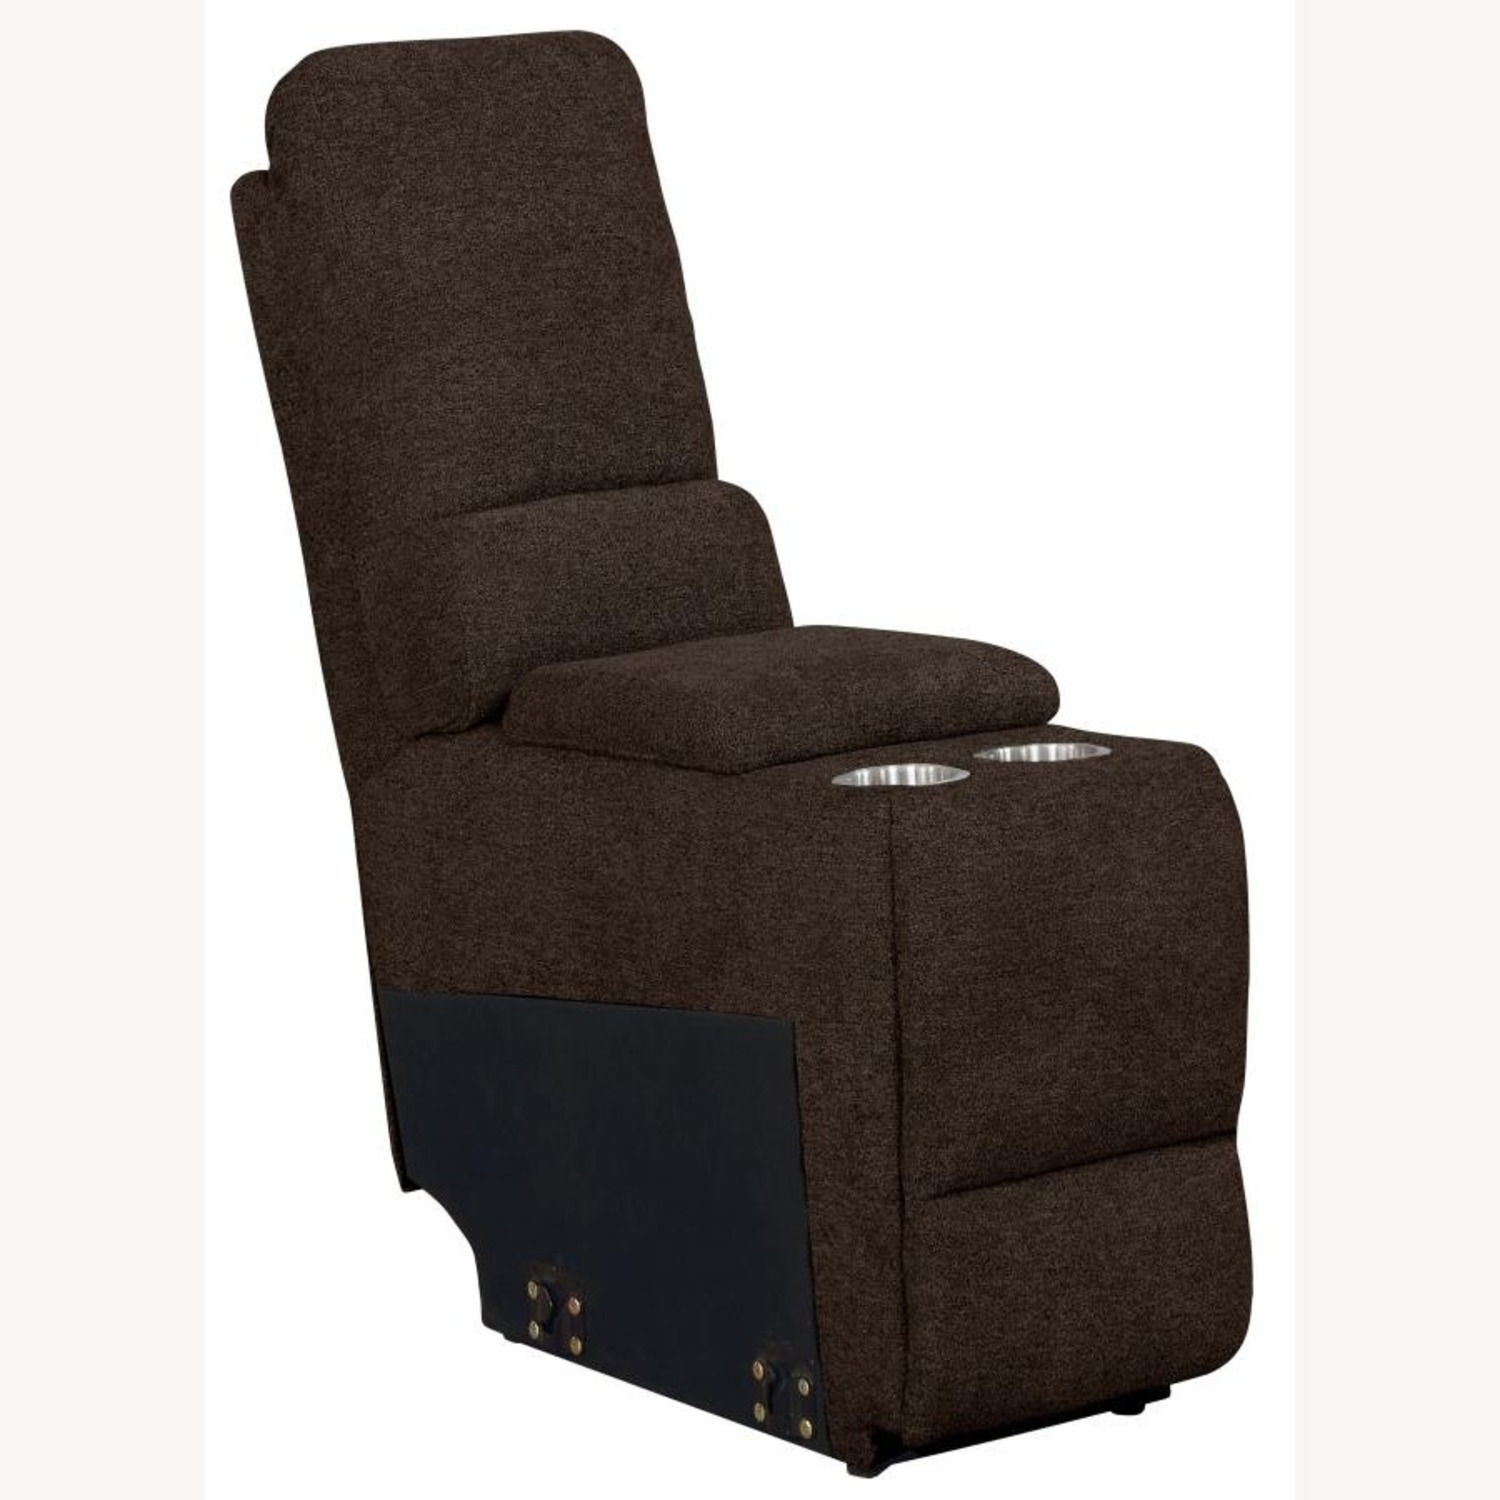 Motion Sectional In Brown Performance Fabric - image-4